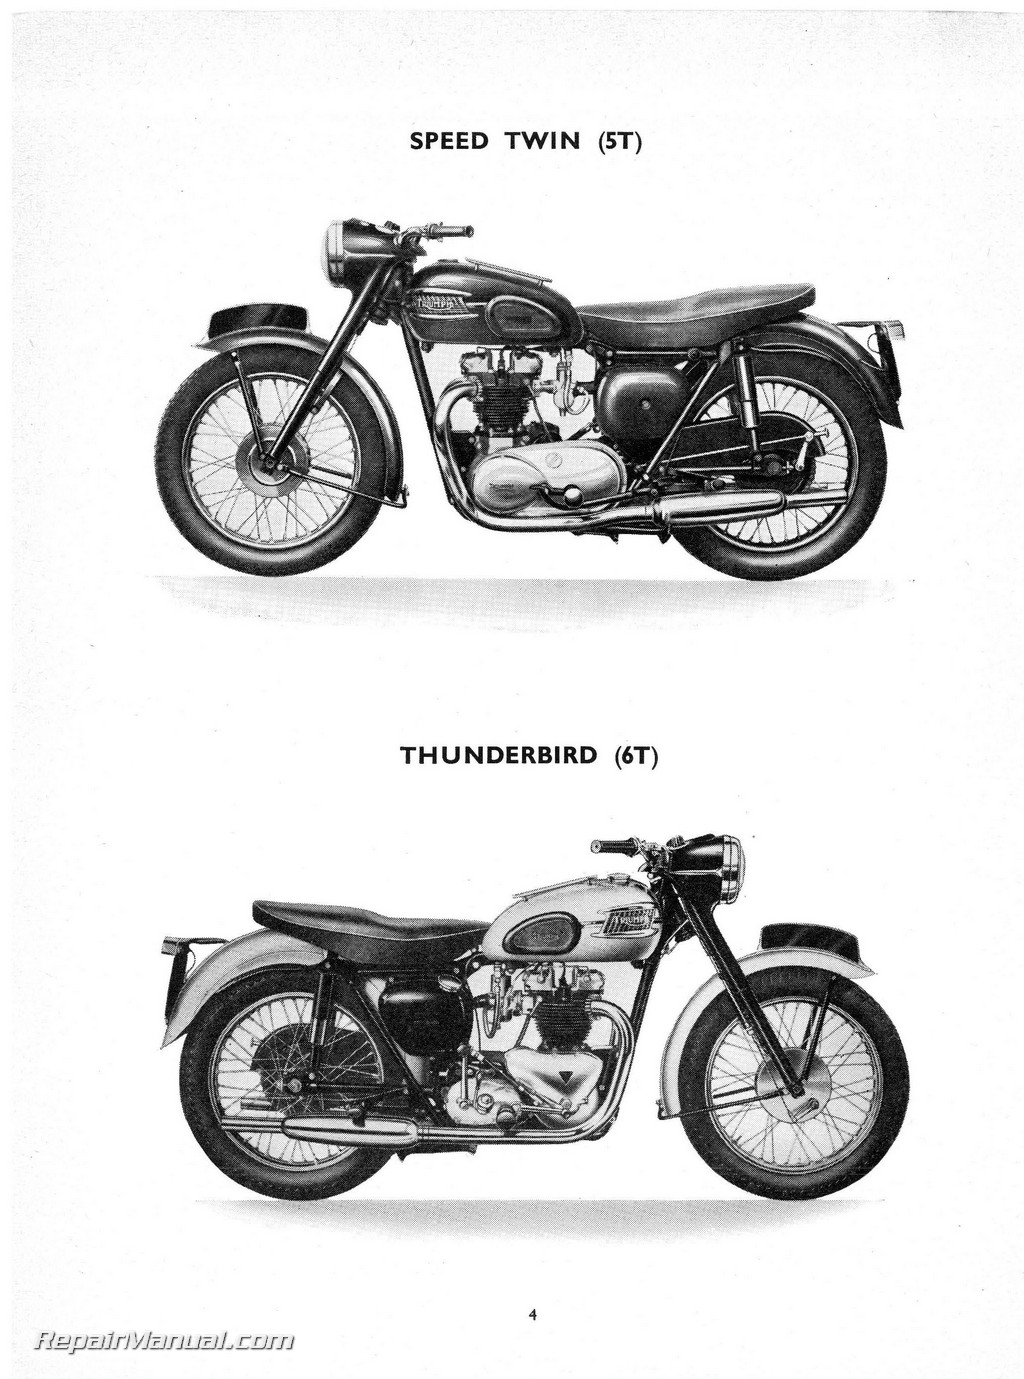 1957 Triumph Speed Twin, Thunderbird, Tiger 100 110 and Trophy Parts Manual